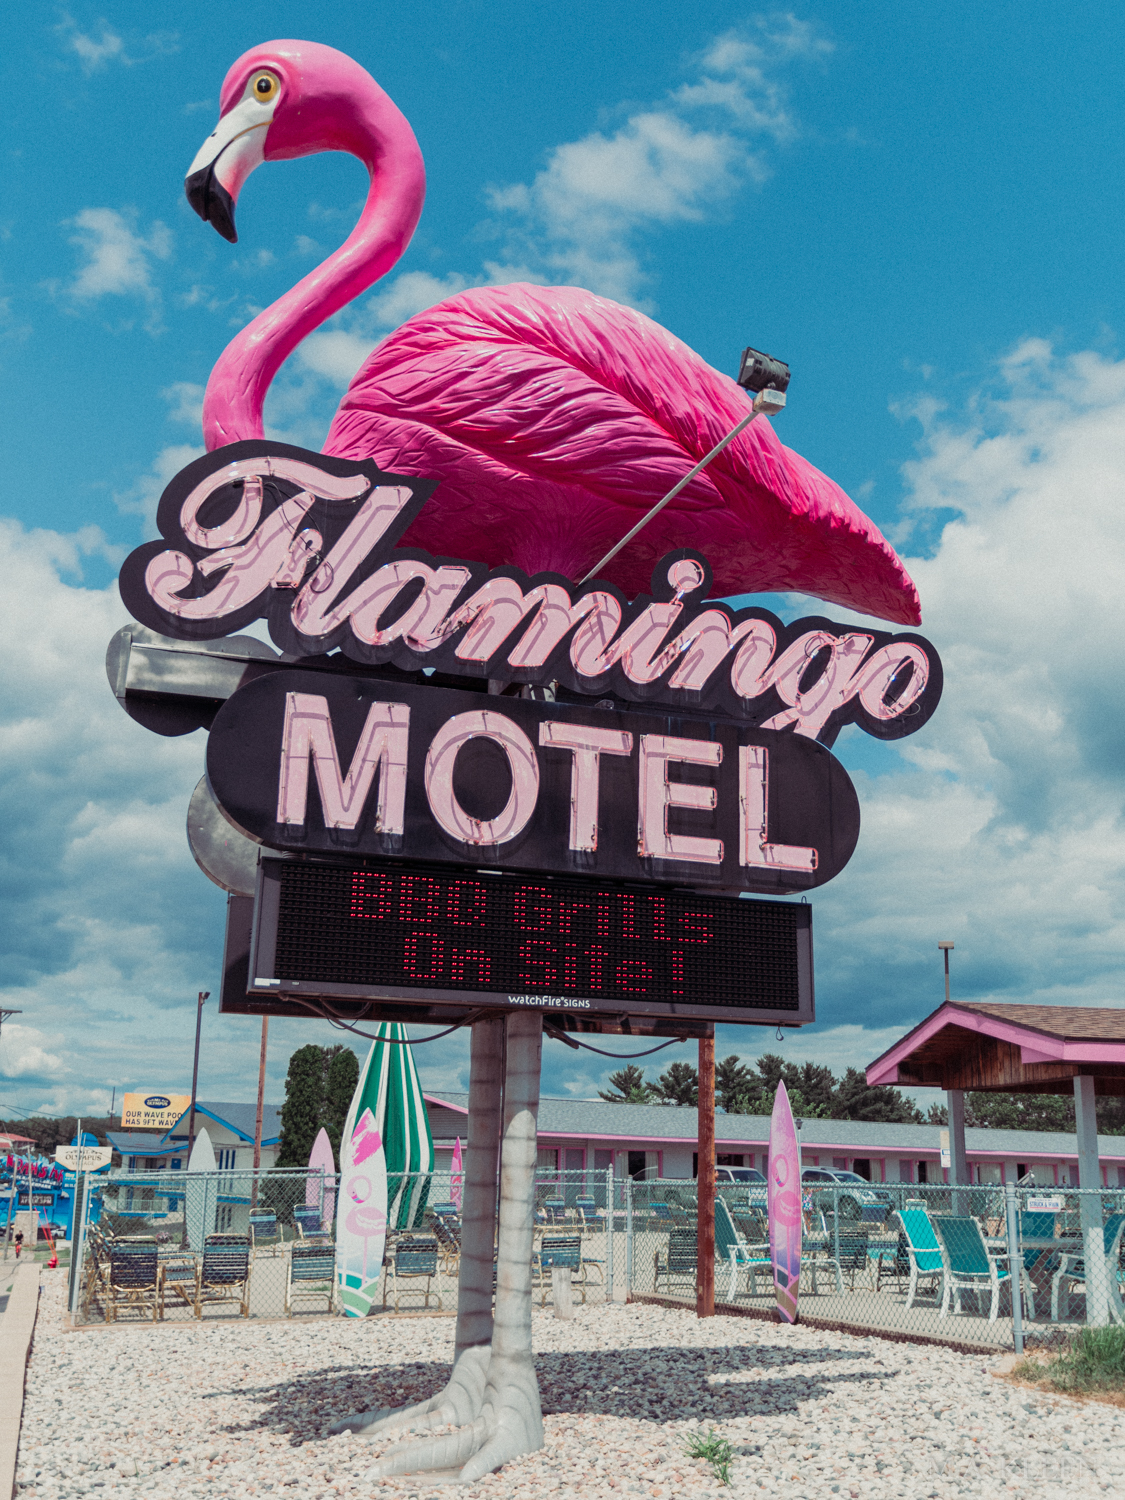 Flamingo Motel and Suites on U.S. Route 12 in Wisconsin Dells, Wisconsin.